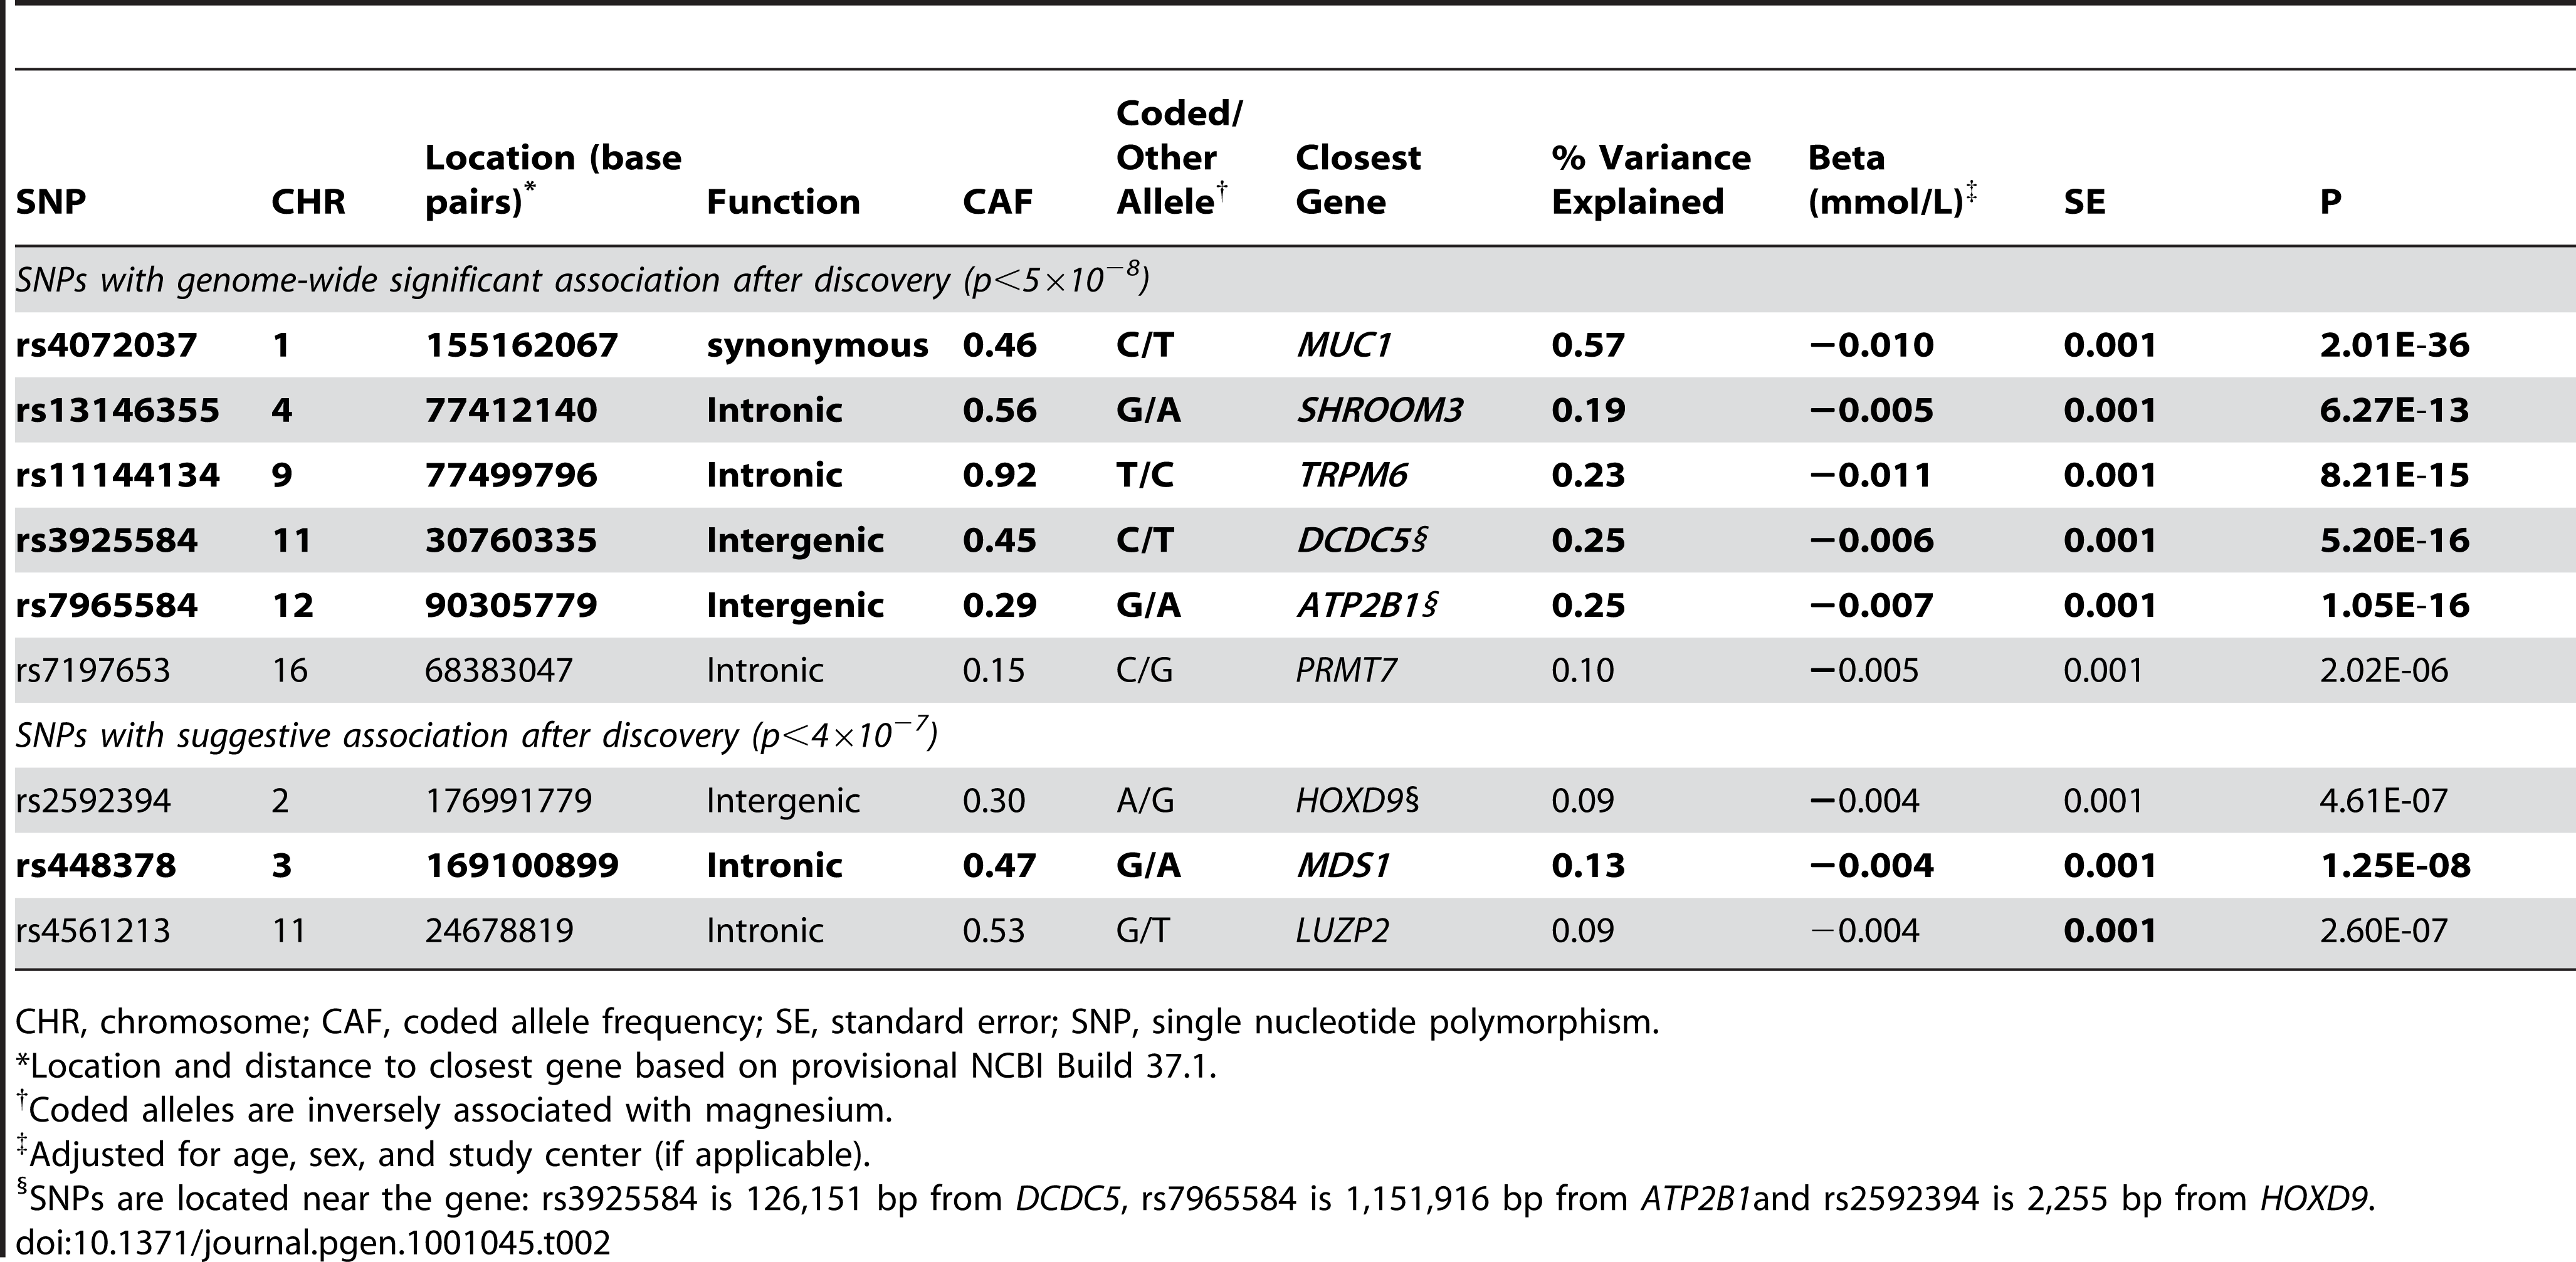 Associations between serum magnesium levels and the lead regional genome-wide significant SNPs in the combined discovery (N=15,366) and replication (N=8,463) samples.